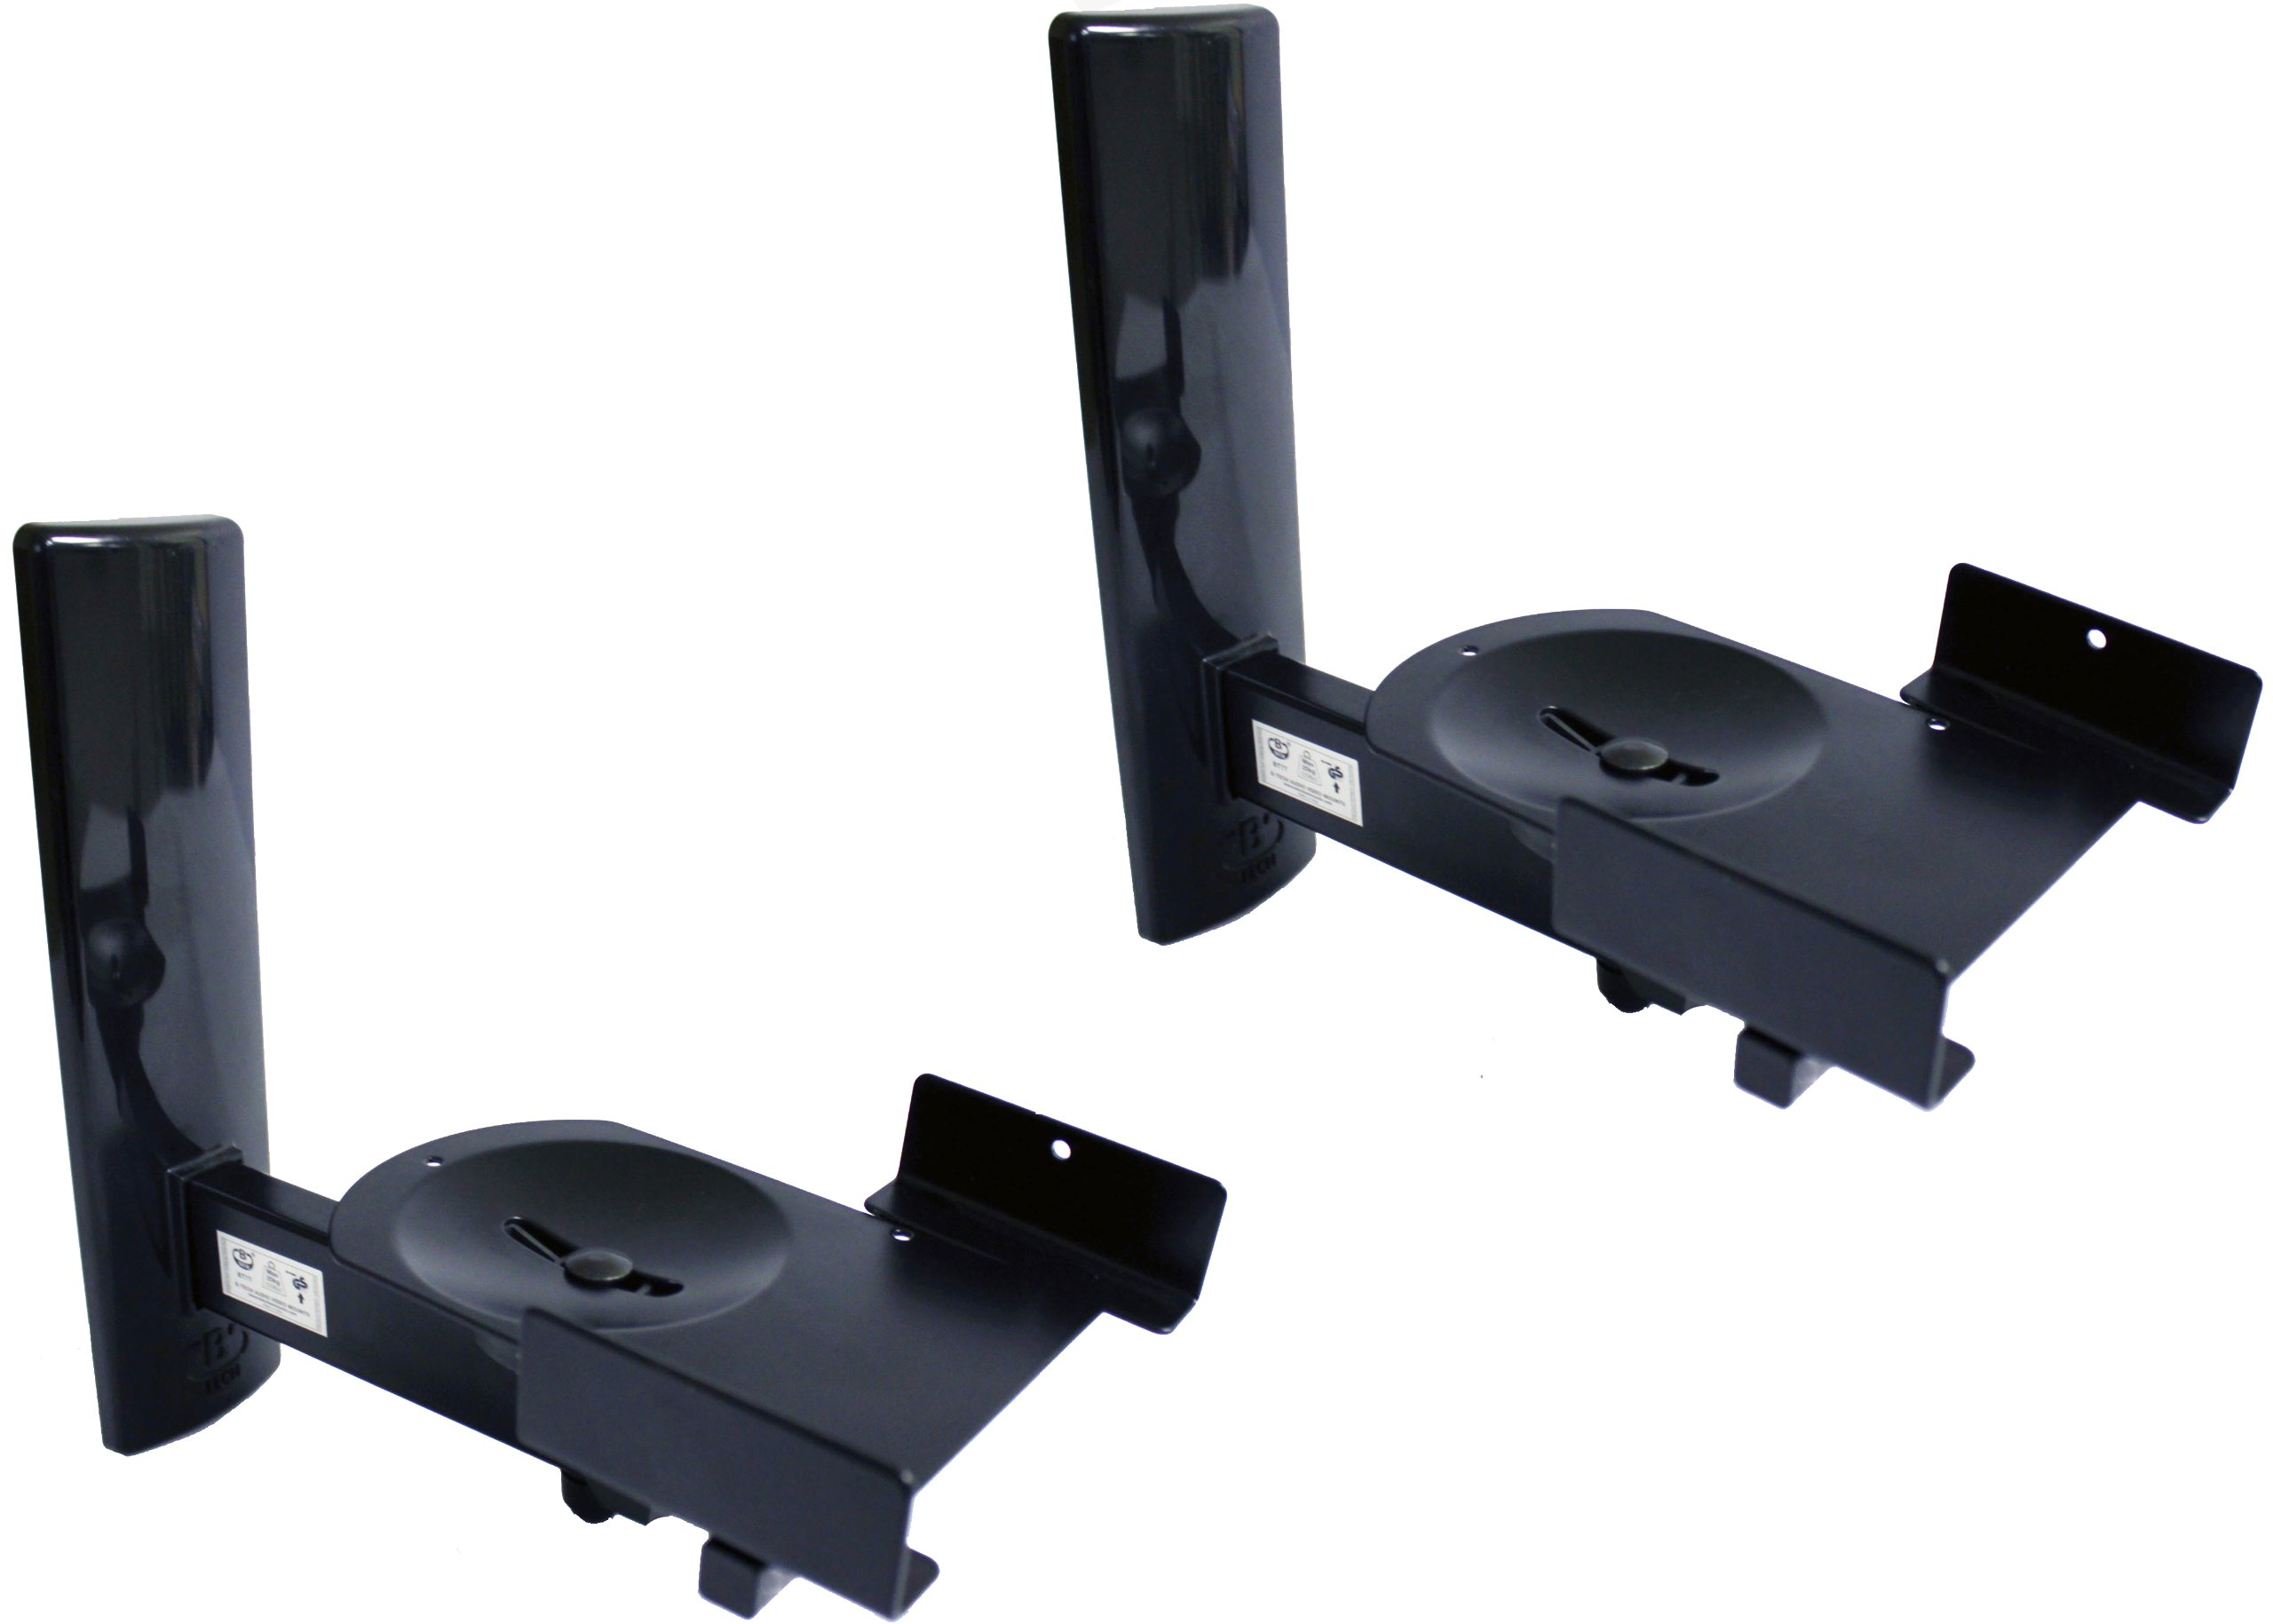 B-Tech BT77 Ultragrip Pro Speaker Mount, Set of 2, Side Clamp with Tilt and Swivel, Black by BTECH